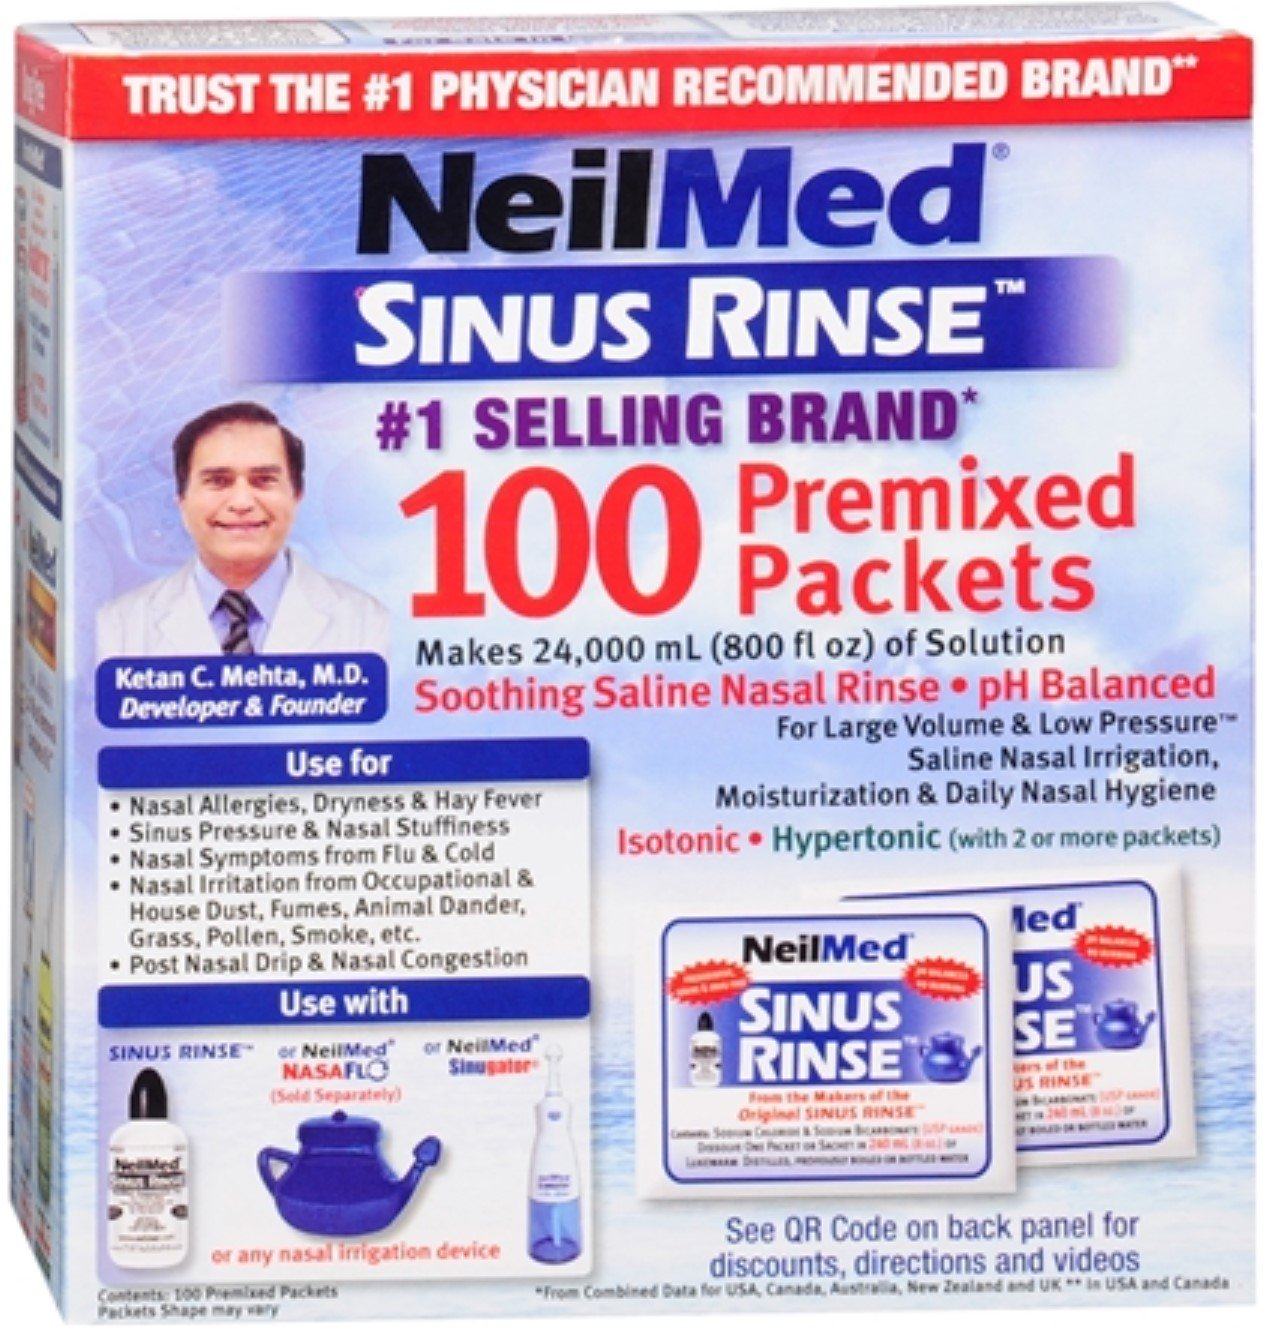 NeilMed Sinus Rinse Premixed Refill Packets 100 Each (Pack of 11) by NeilMed